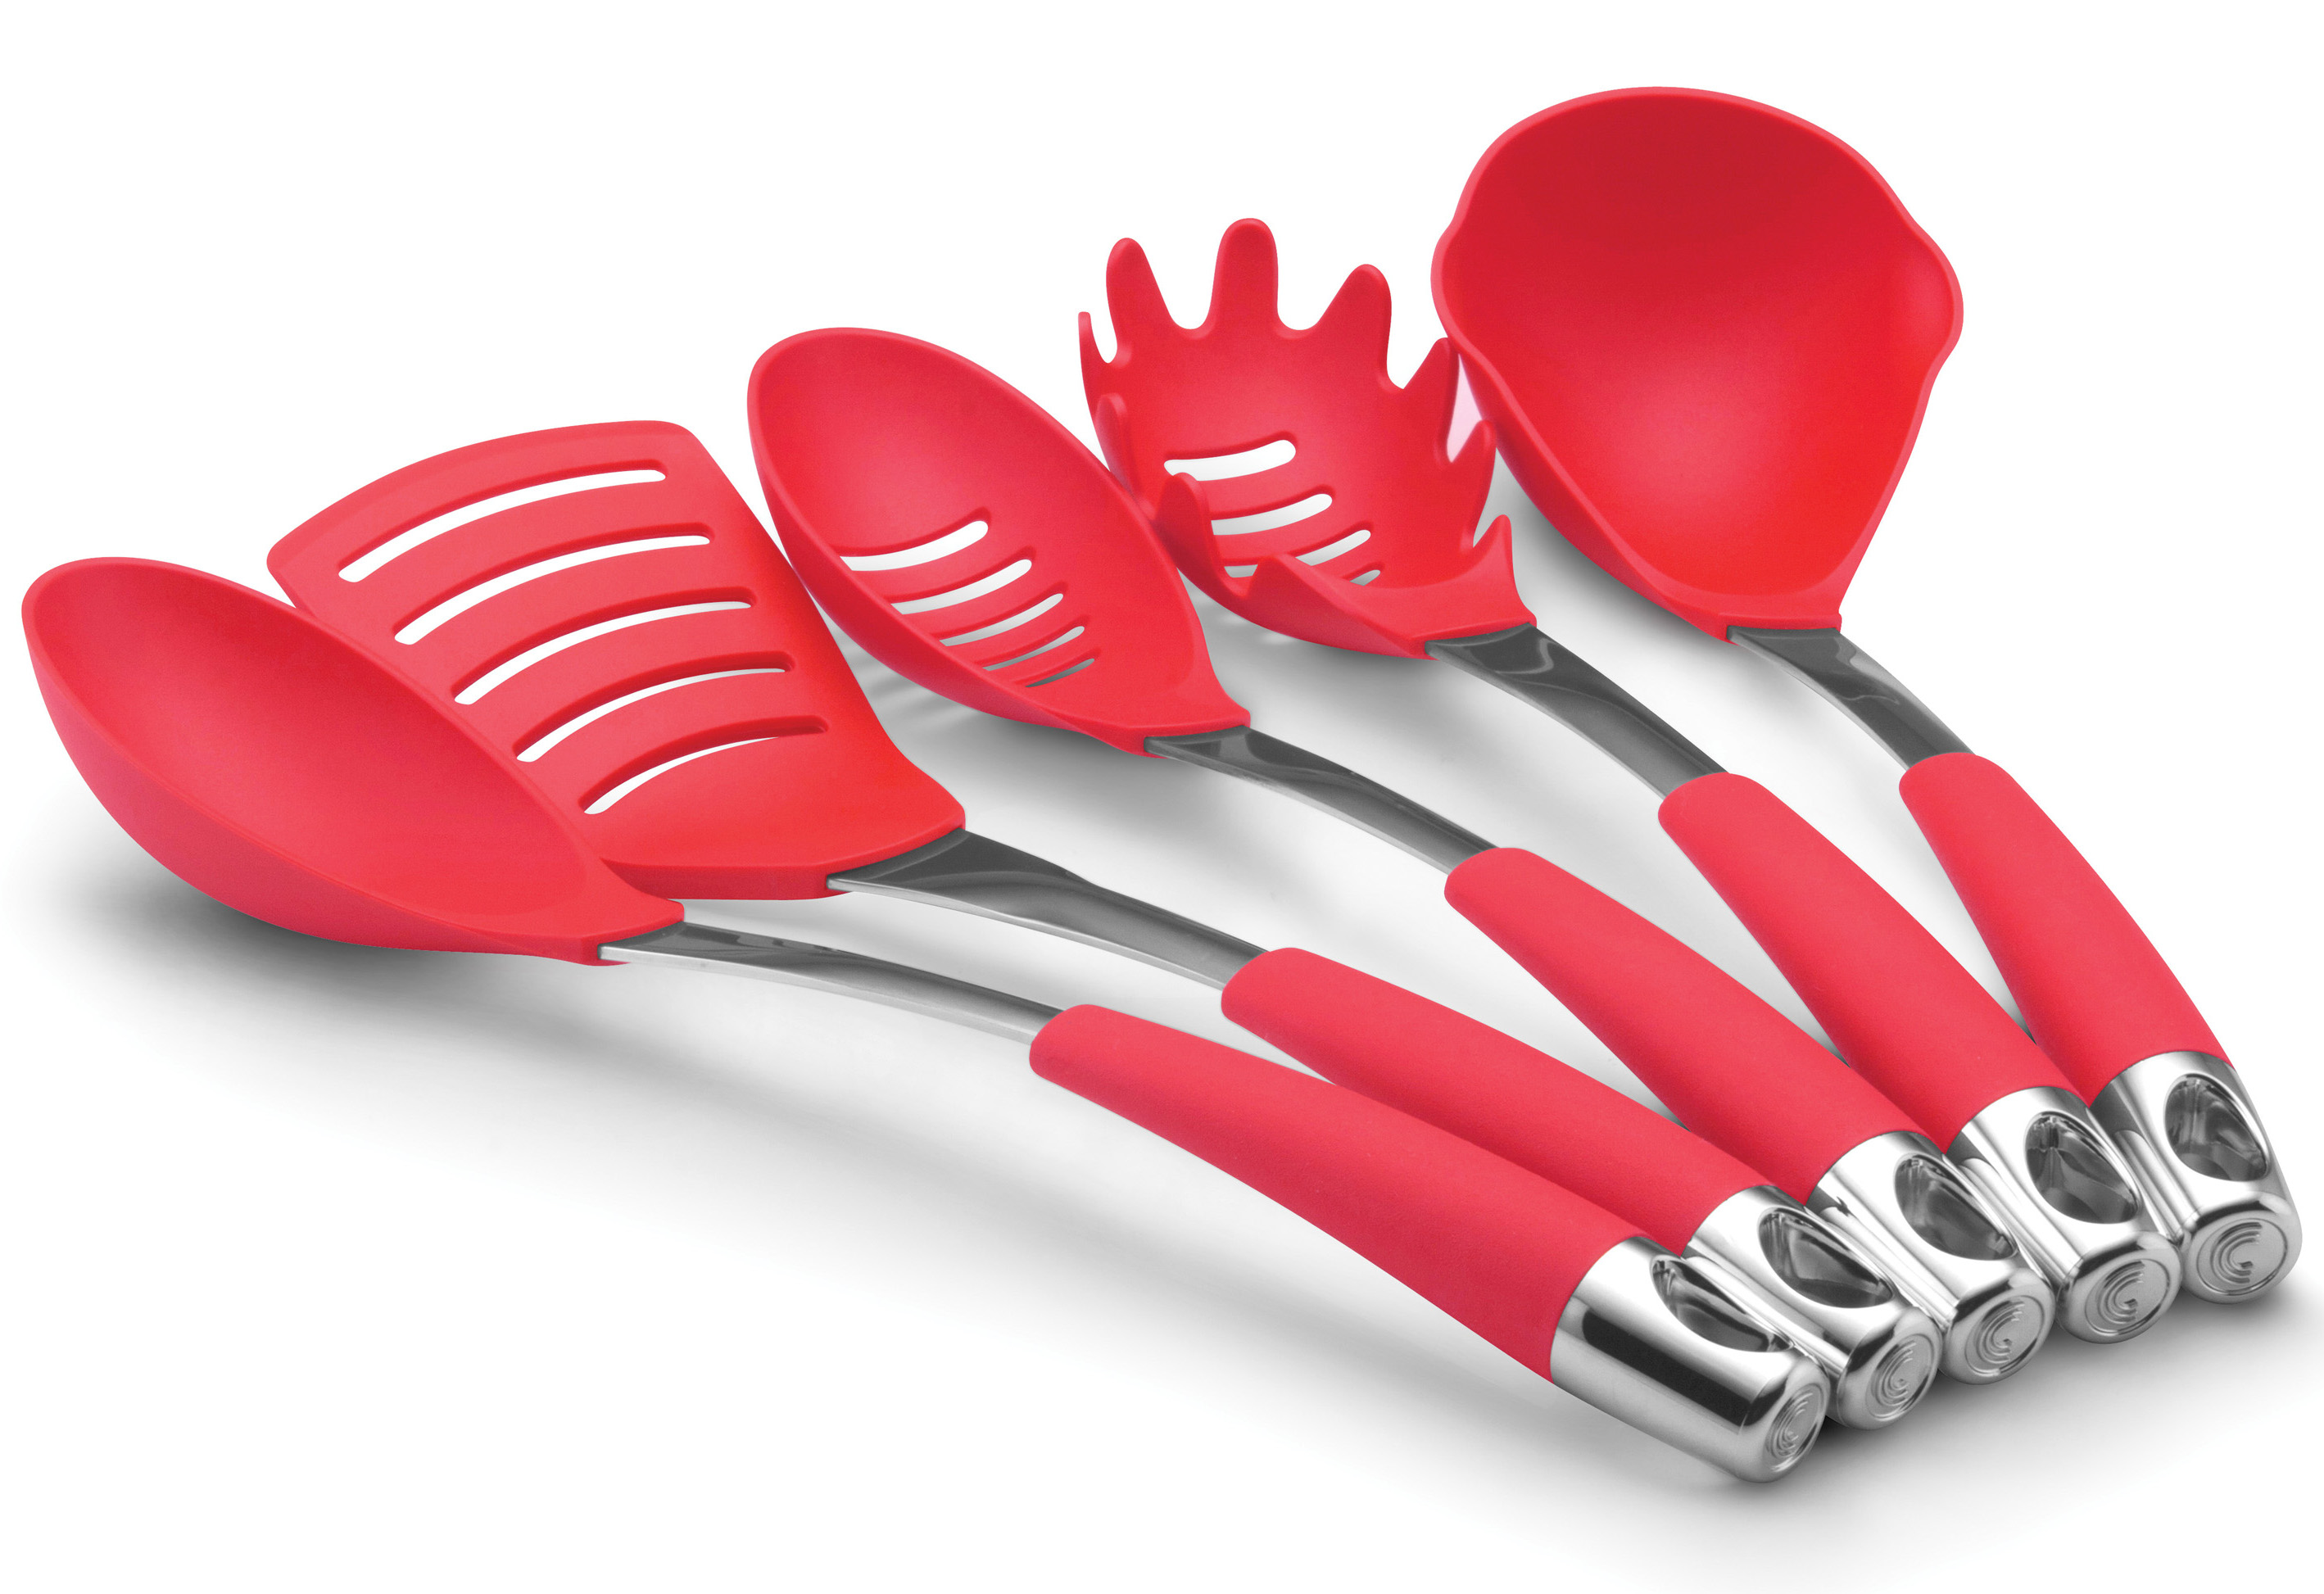 Delicieux 10 Photos To Red Kitchen Utensil Set